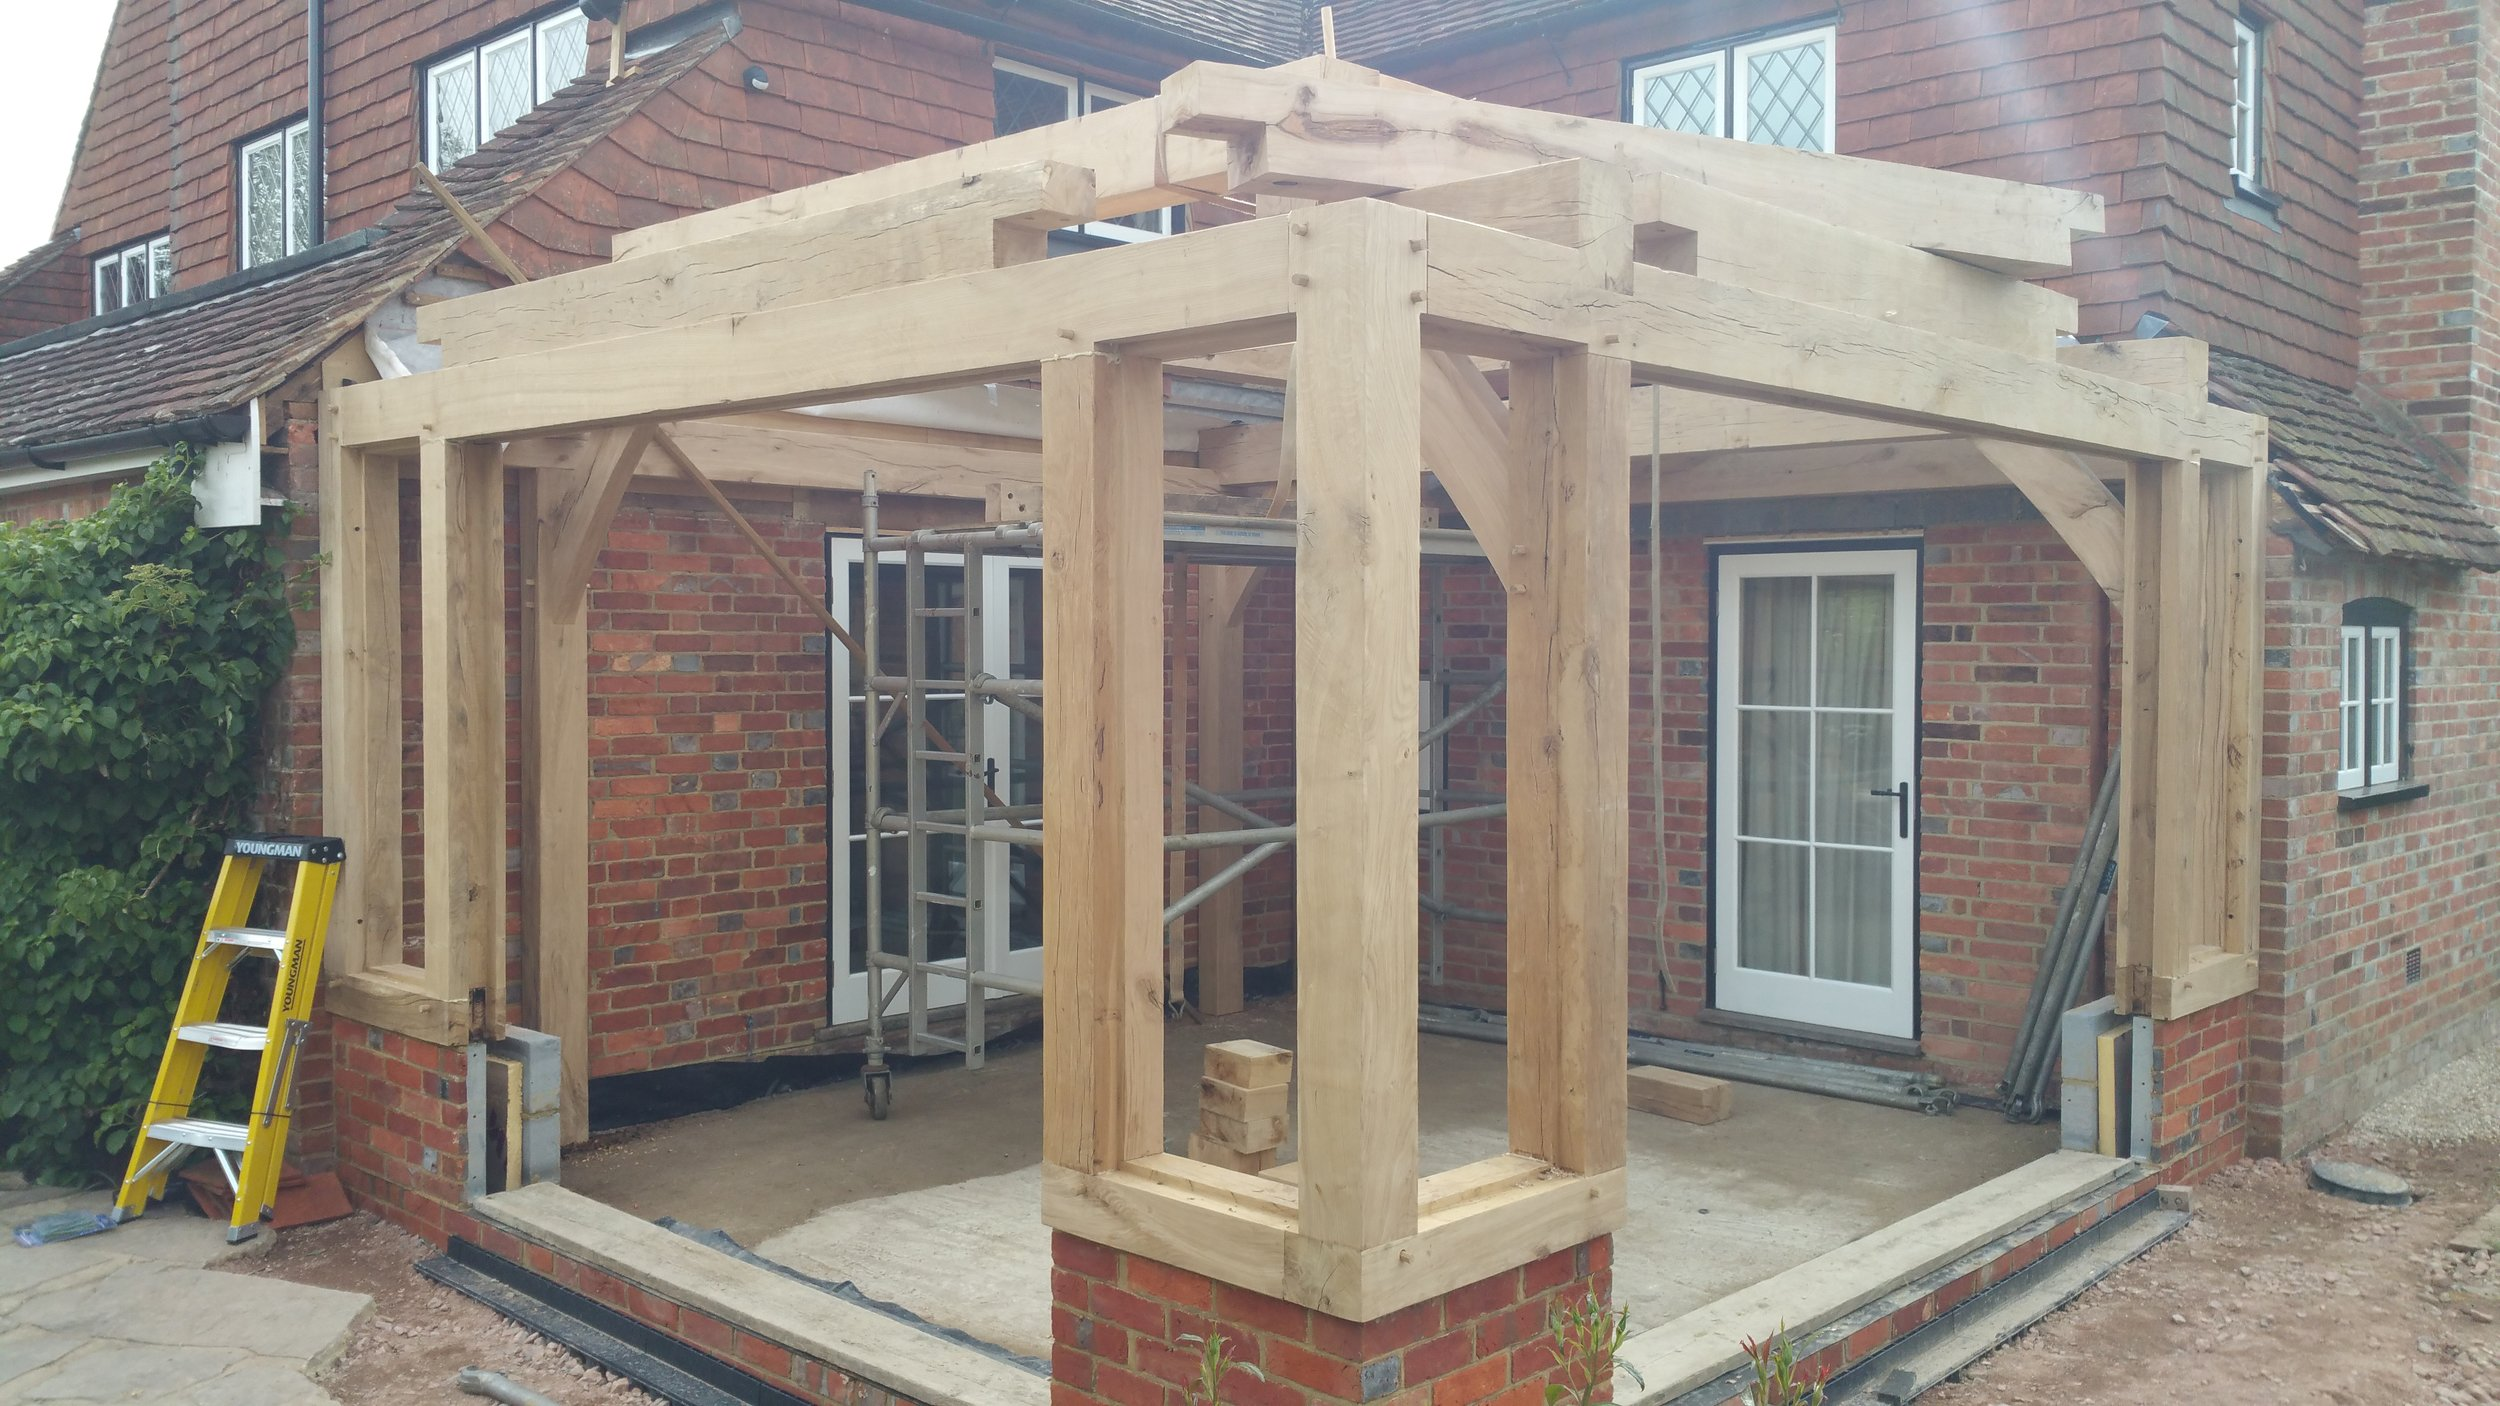 This sun room was designed by the client himself. He wanted it made fro air dried oak so he could have the glazing fitted directly to the frame